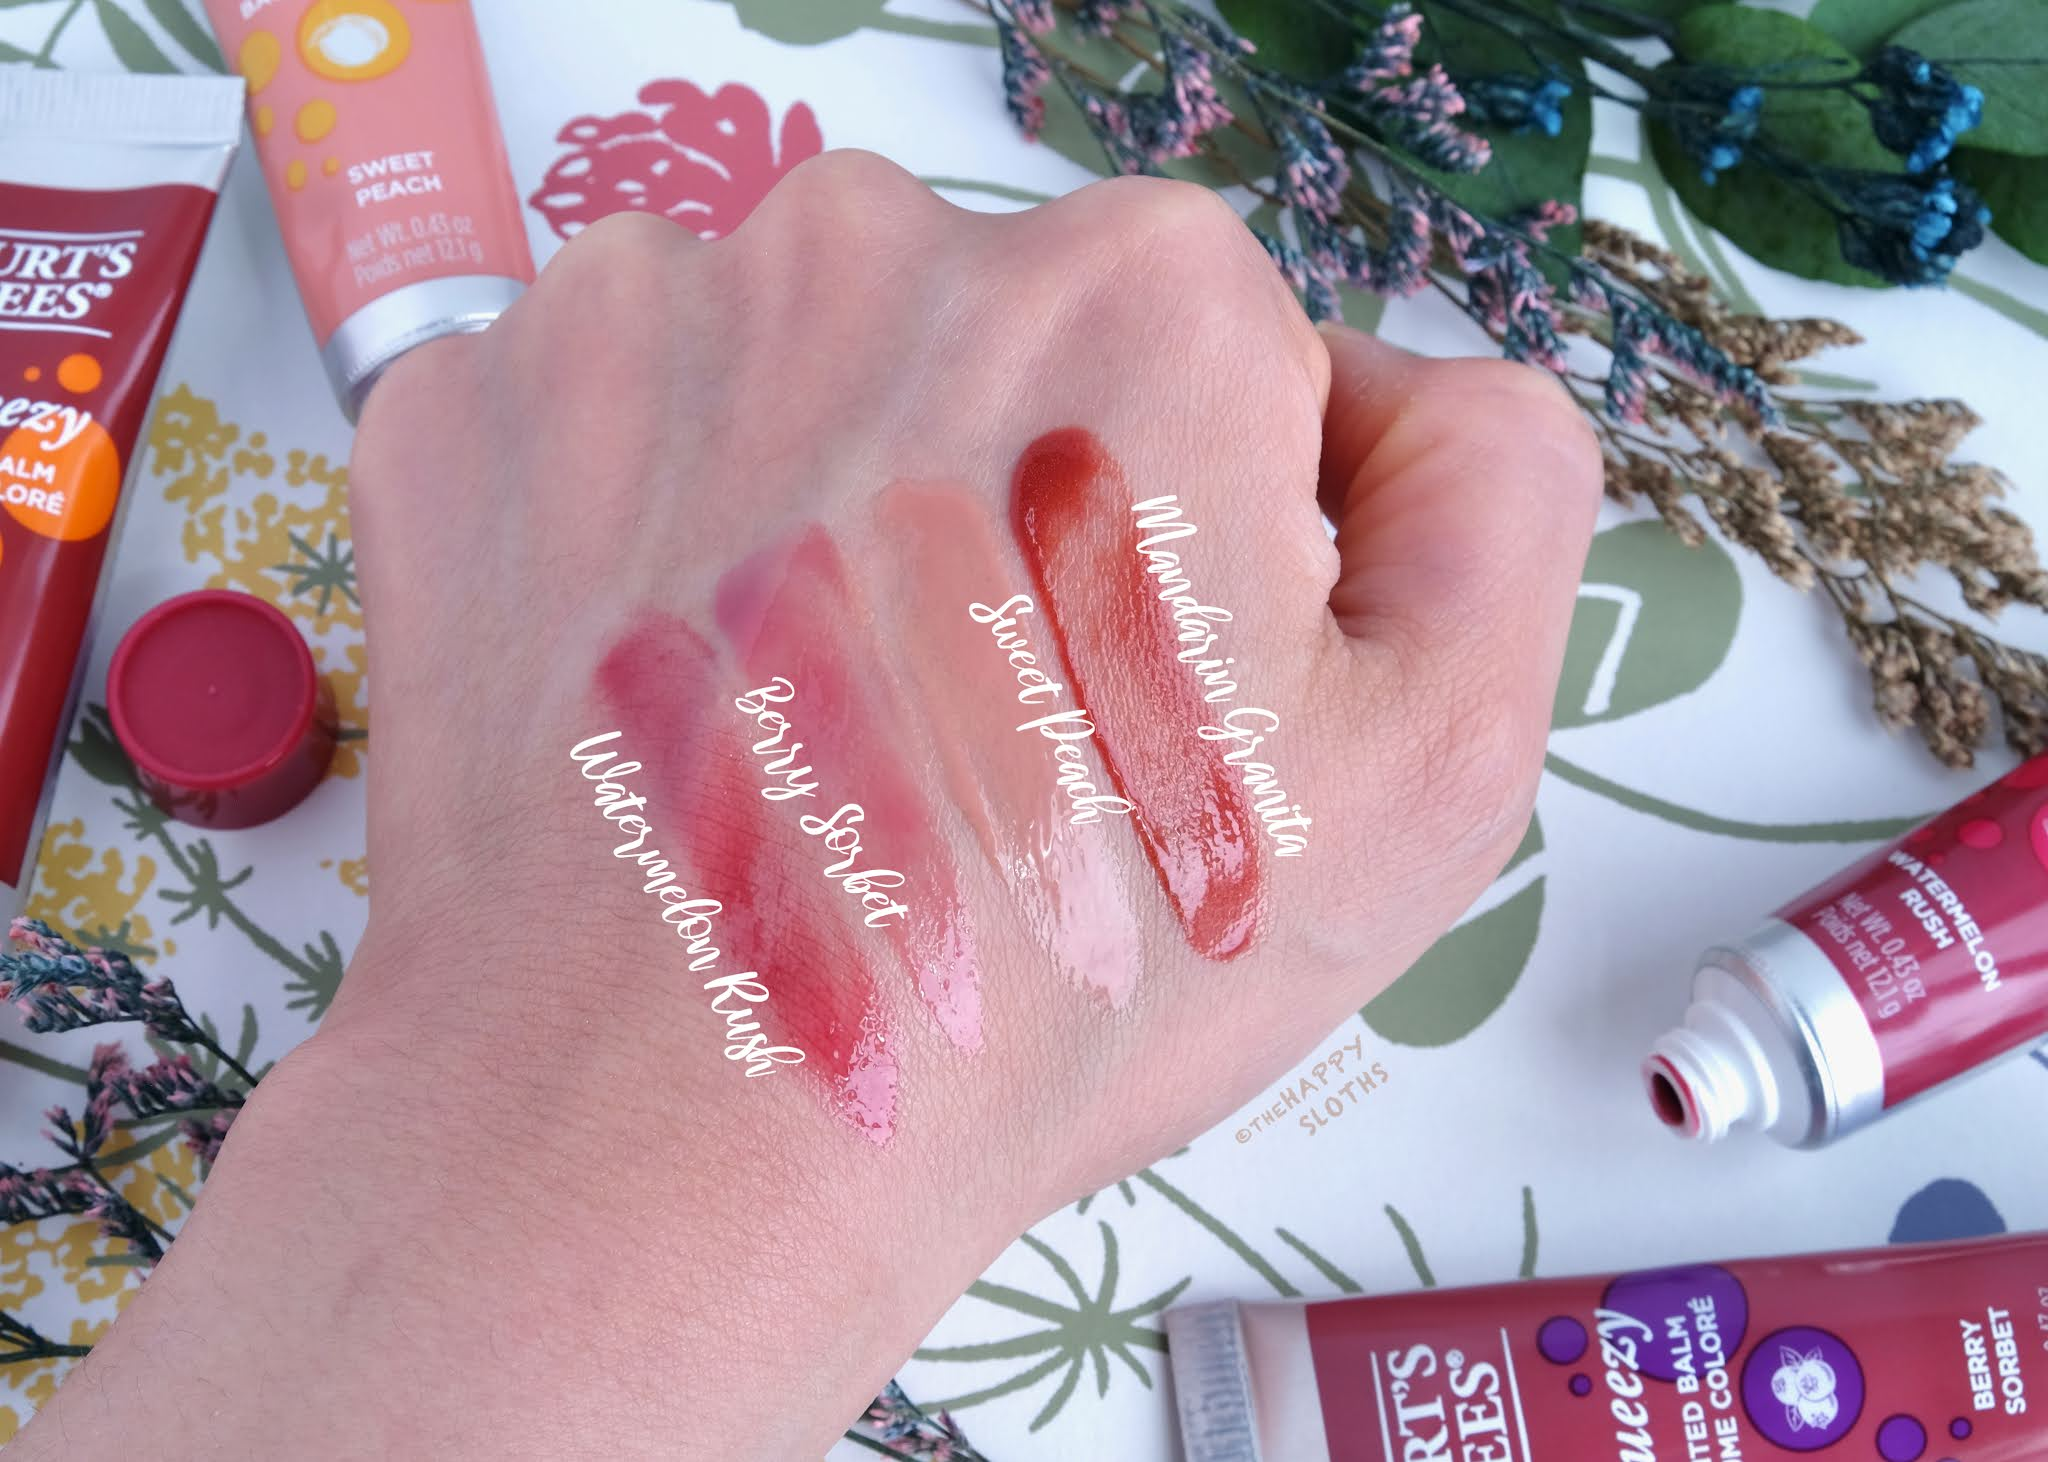 Burt's Bees | Squeezy Tinted Balm: Review and Swatches